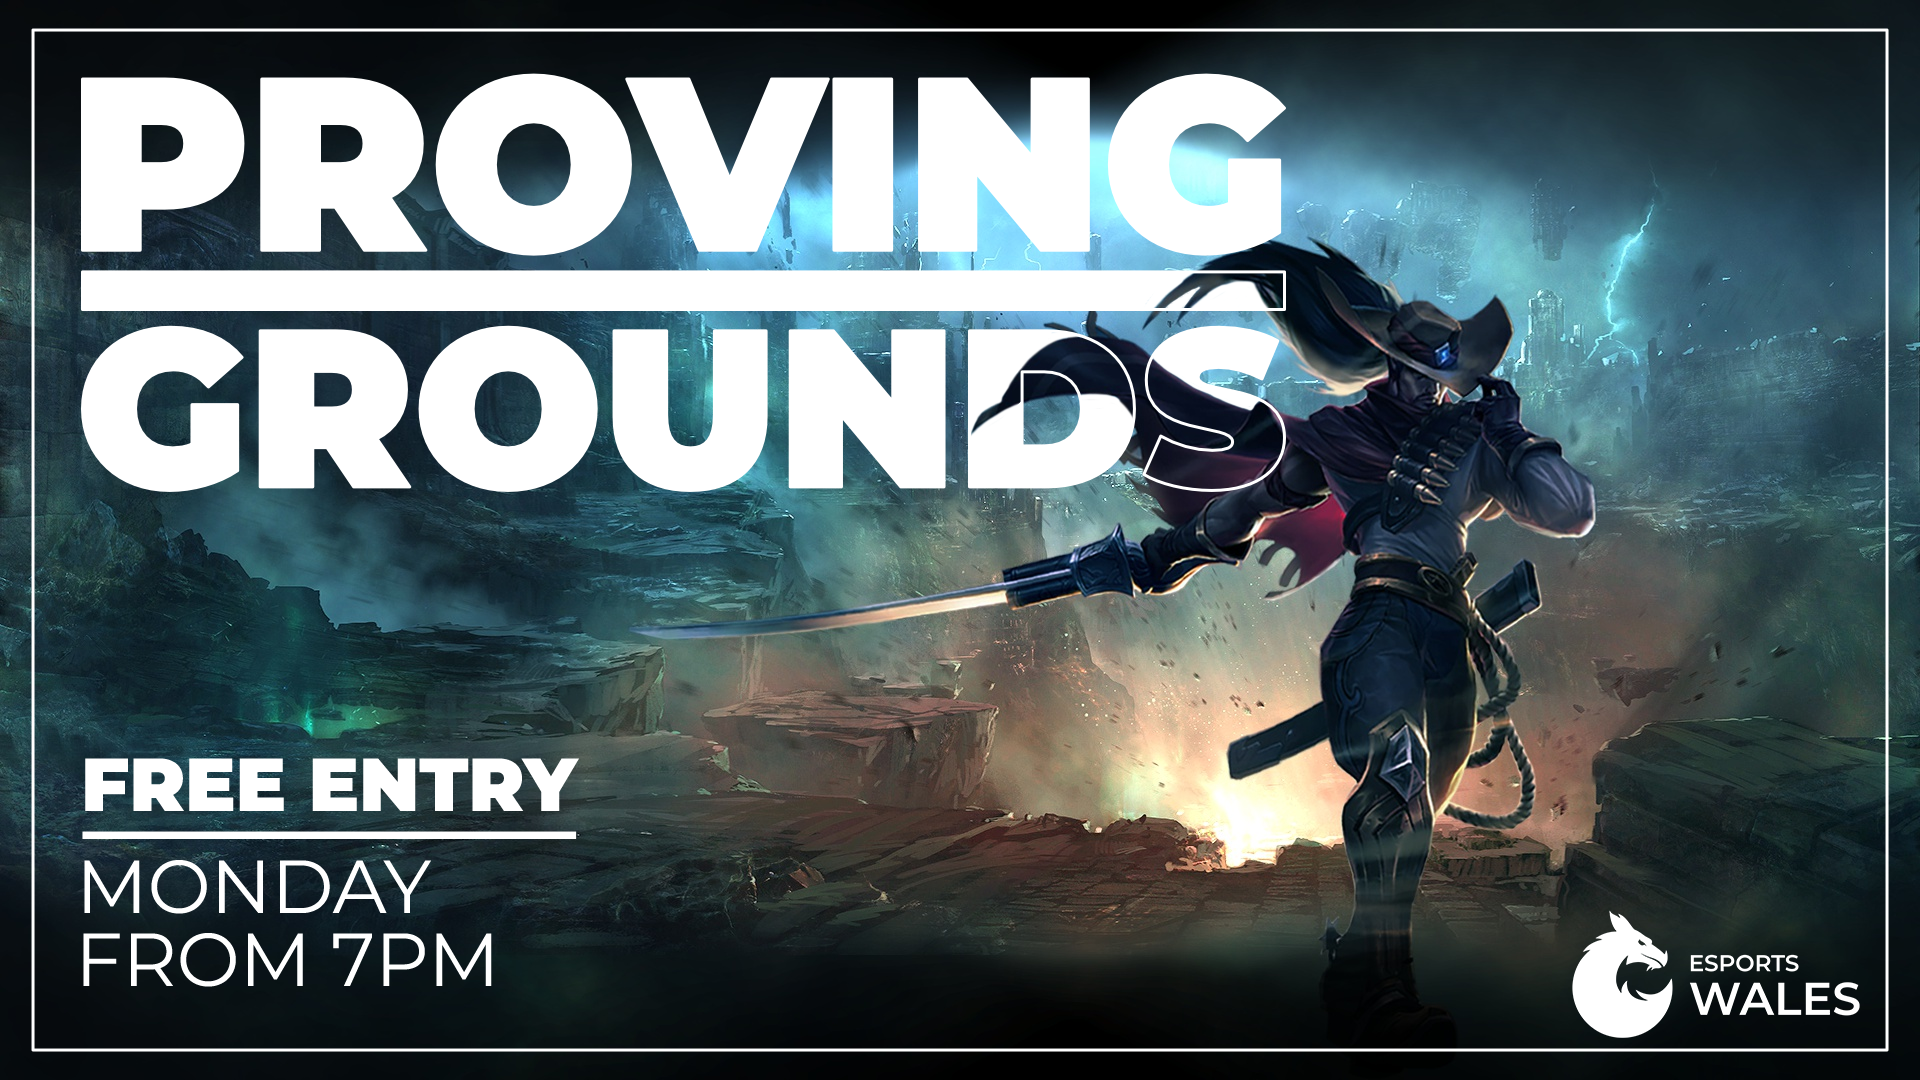 What are the proving grounds?